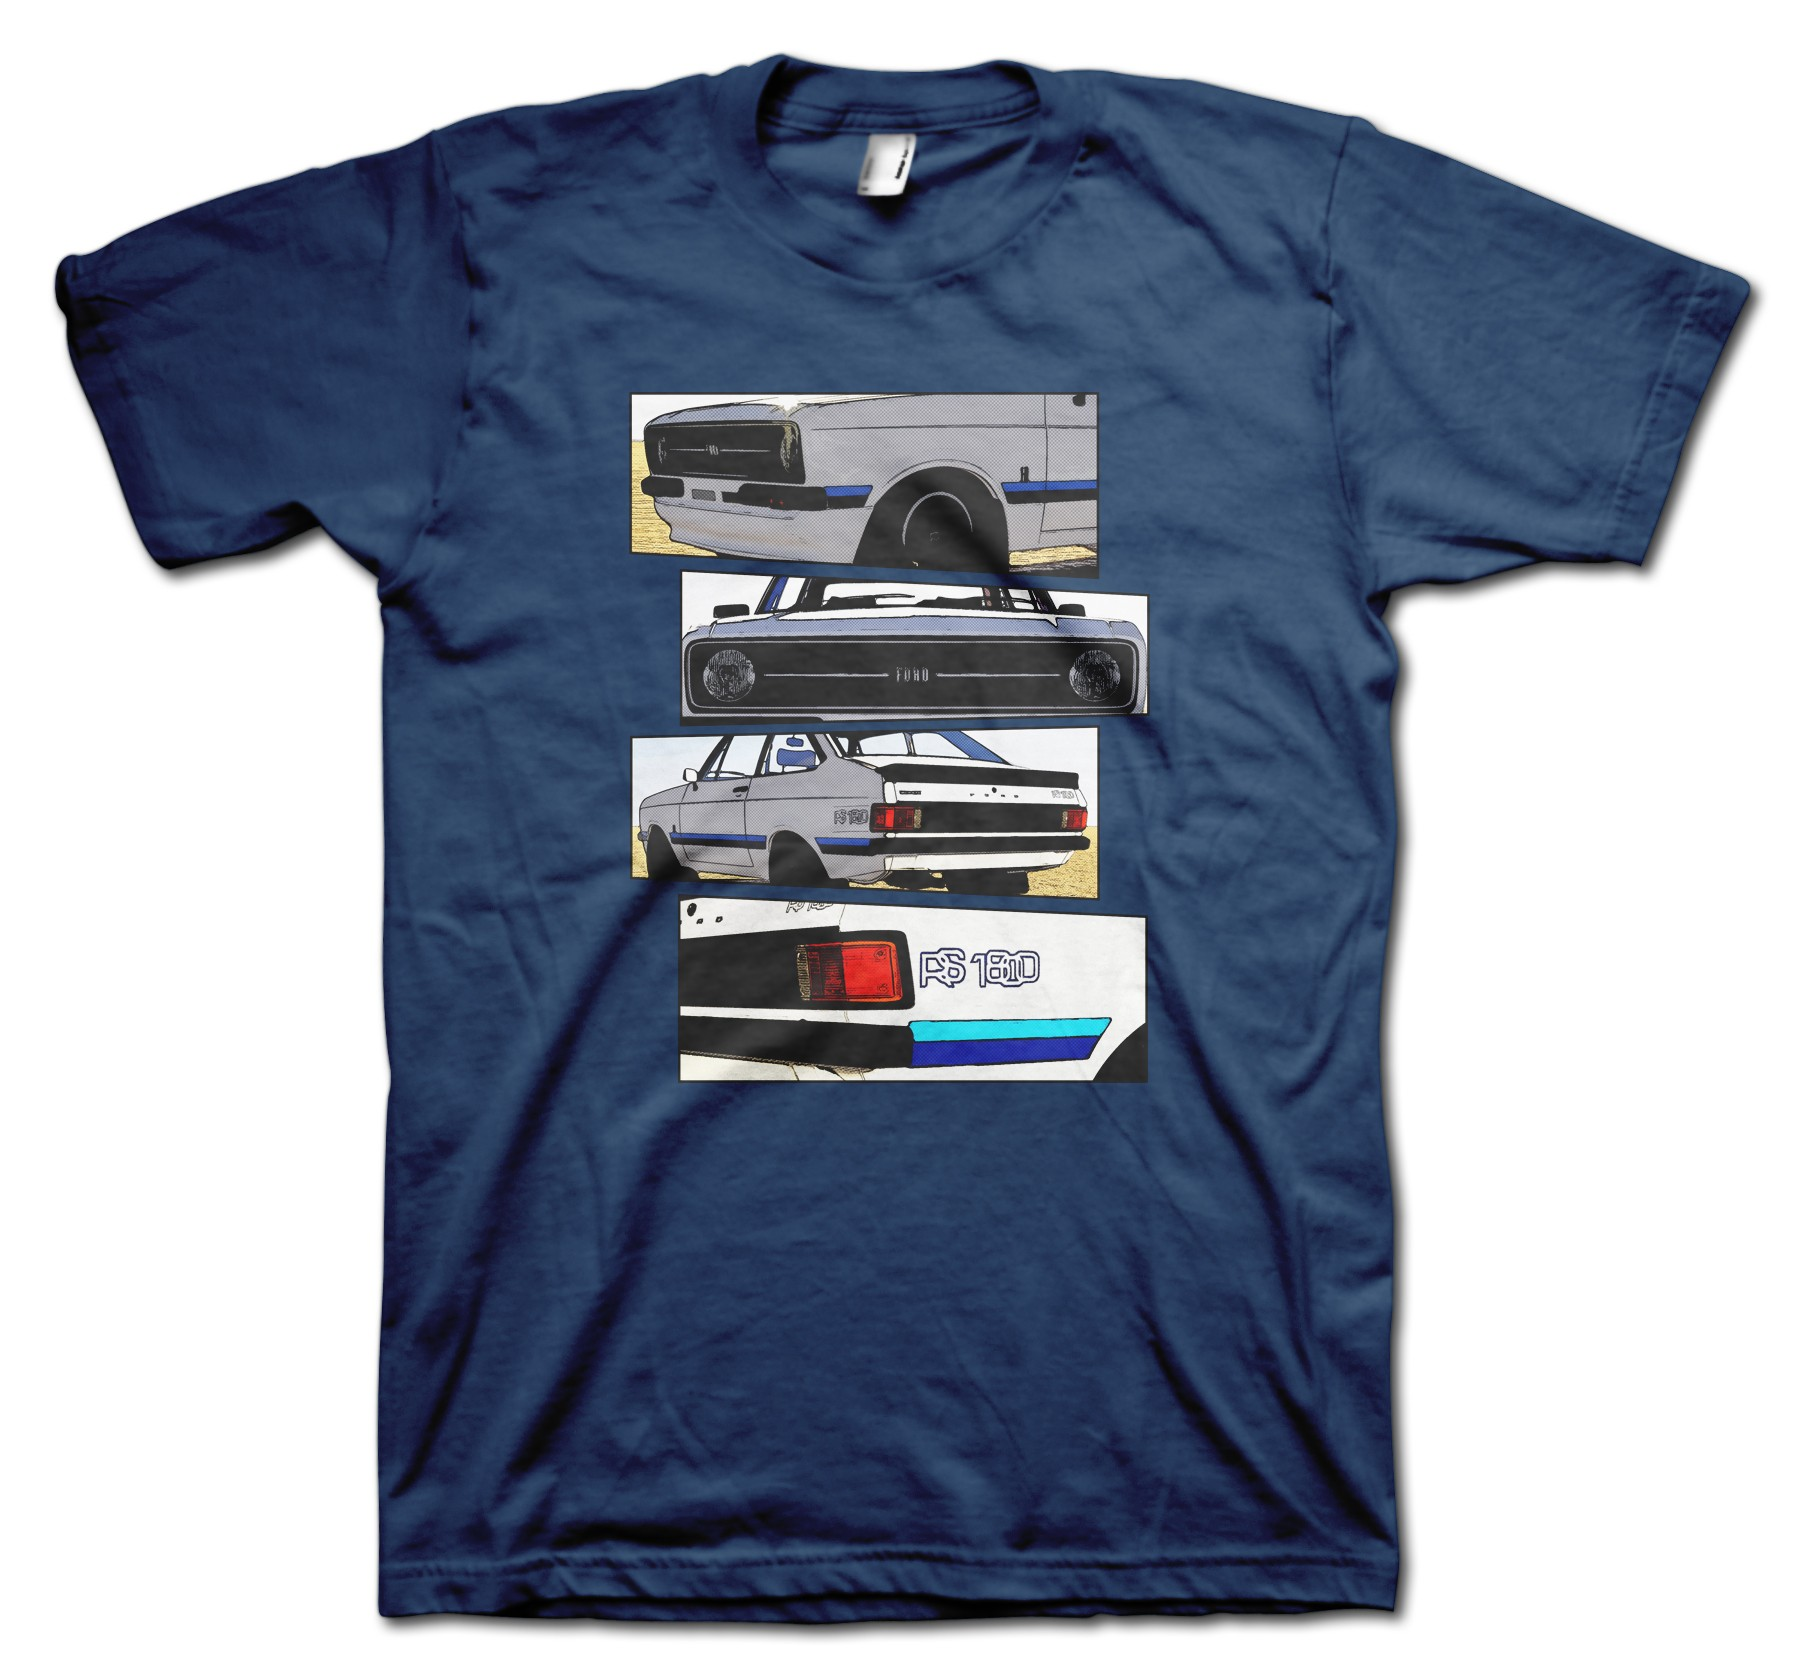 Ford Escort RS1800 Blocks t-shirt